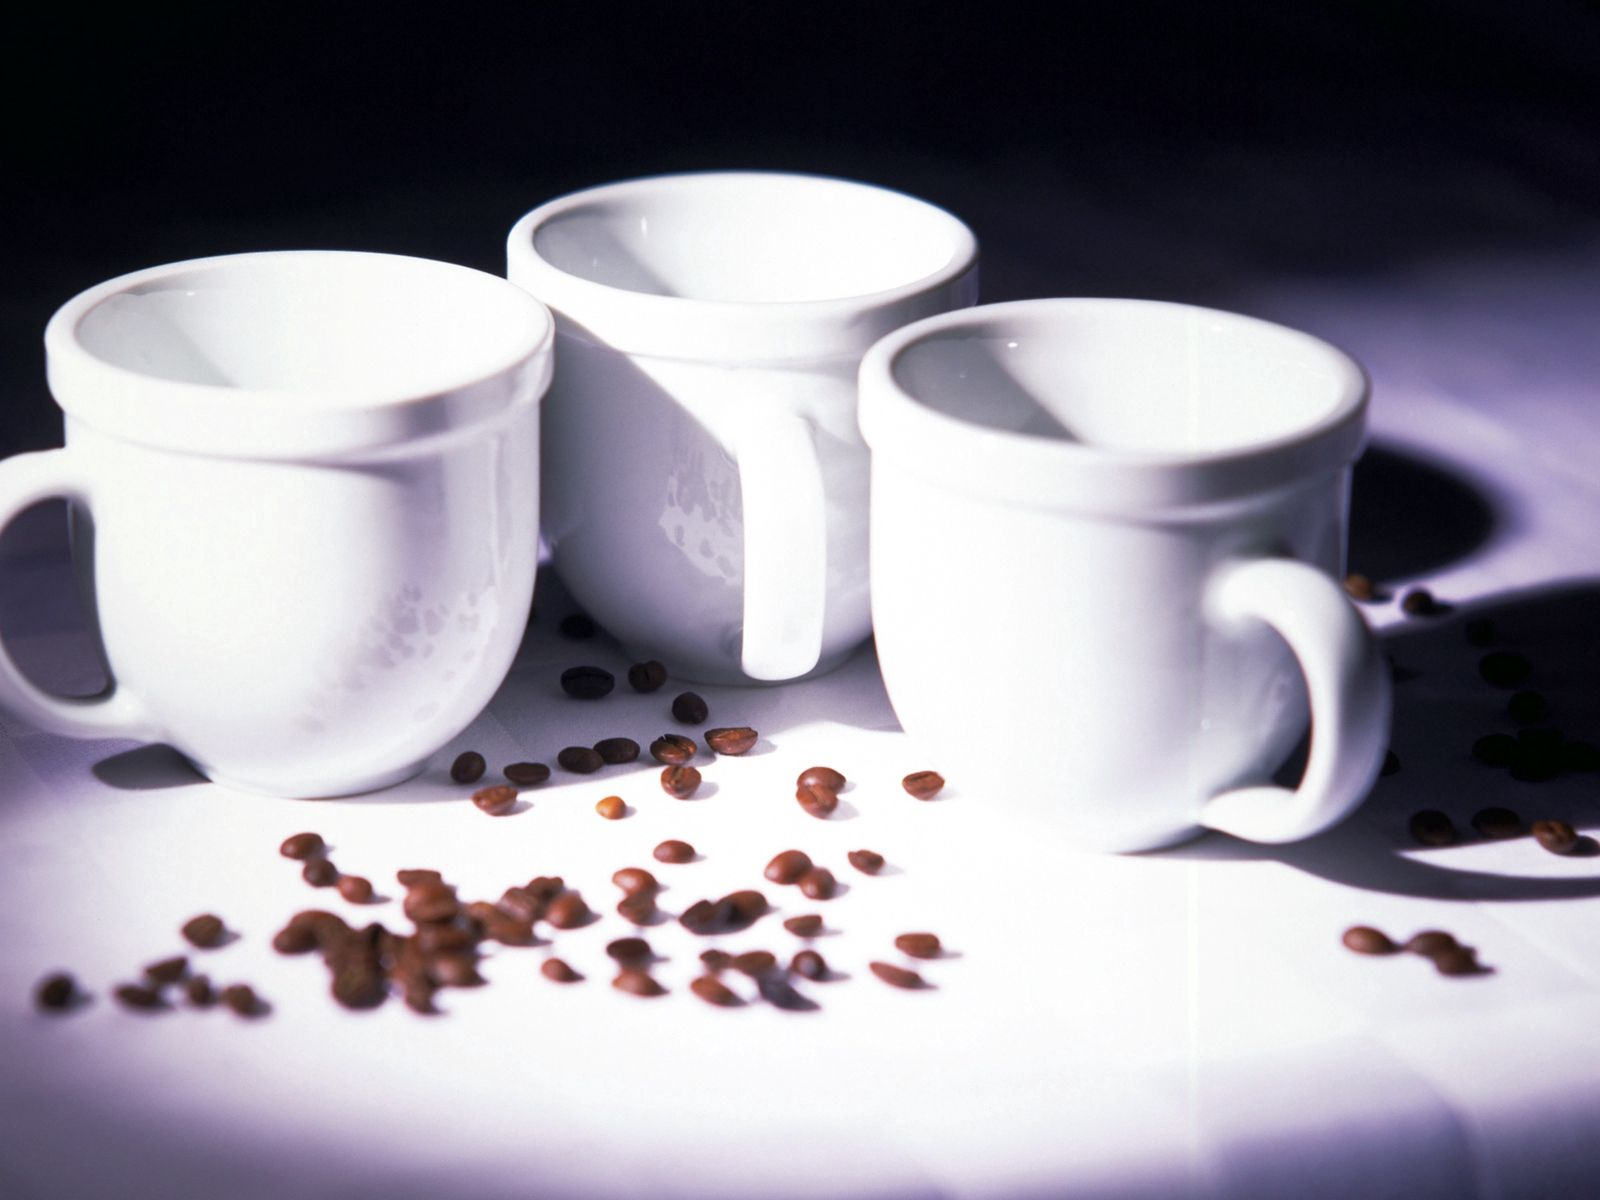 146849 download wallpaper Food, Cups, Coffee Beans screensavers and pictures for free